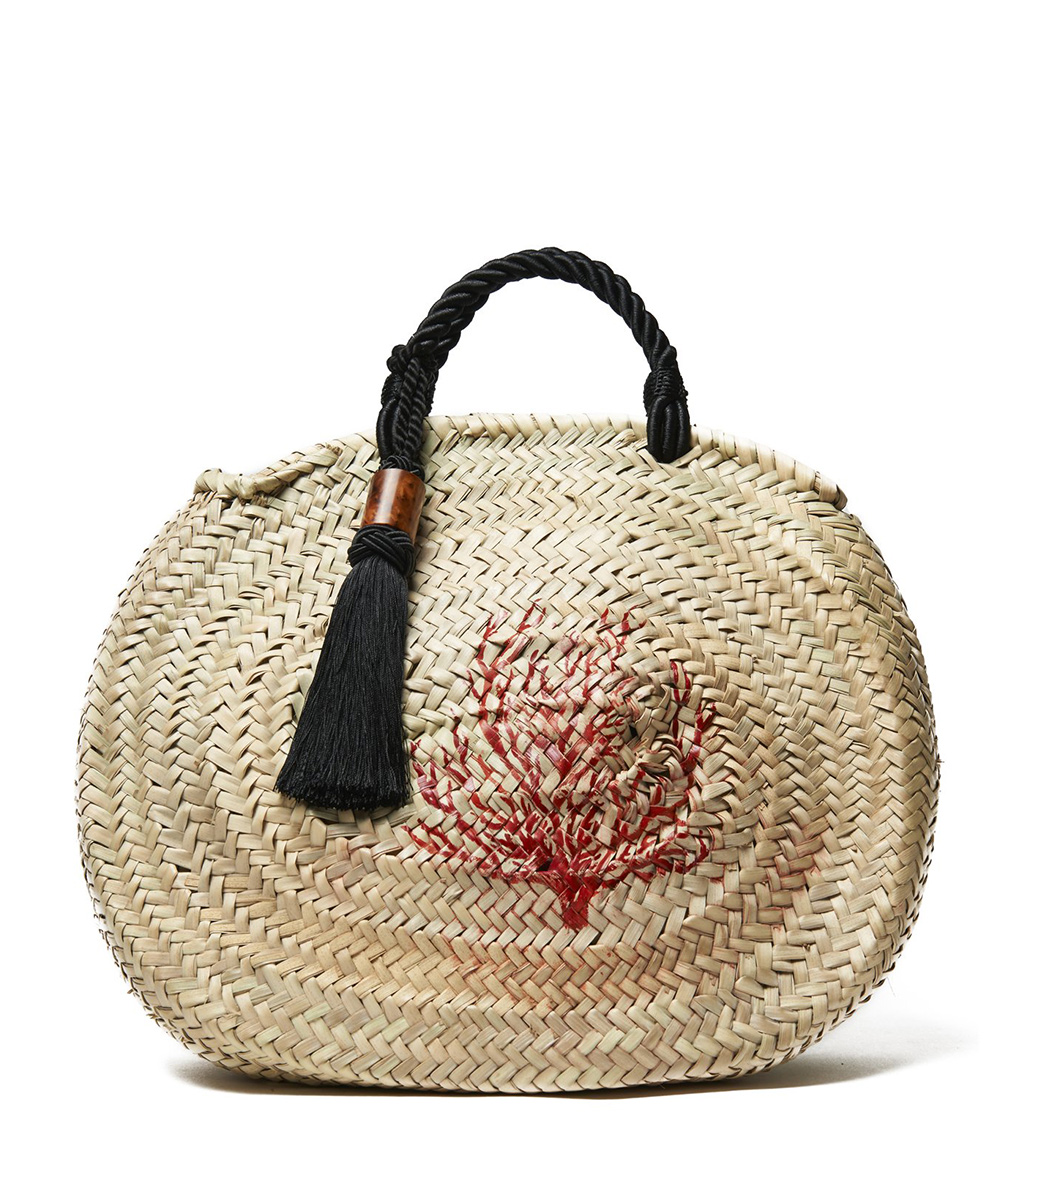 Woven Palm Tassel Tote with Hand-Painted Coral SBZ-woven-palm-tassel-tote-hand-painted-coral